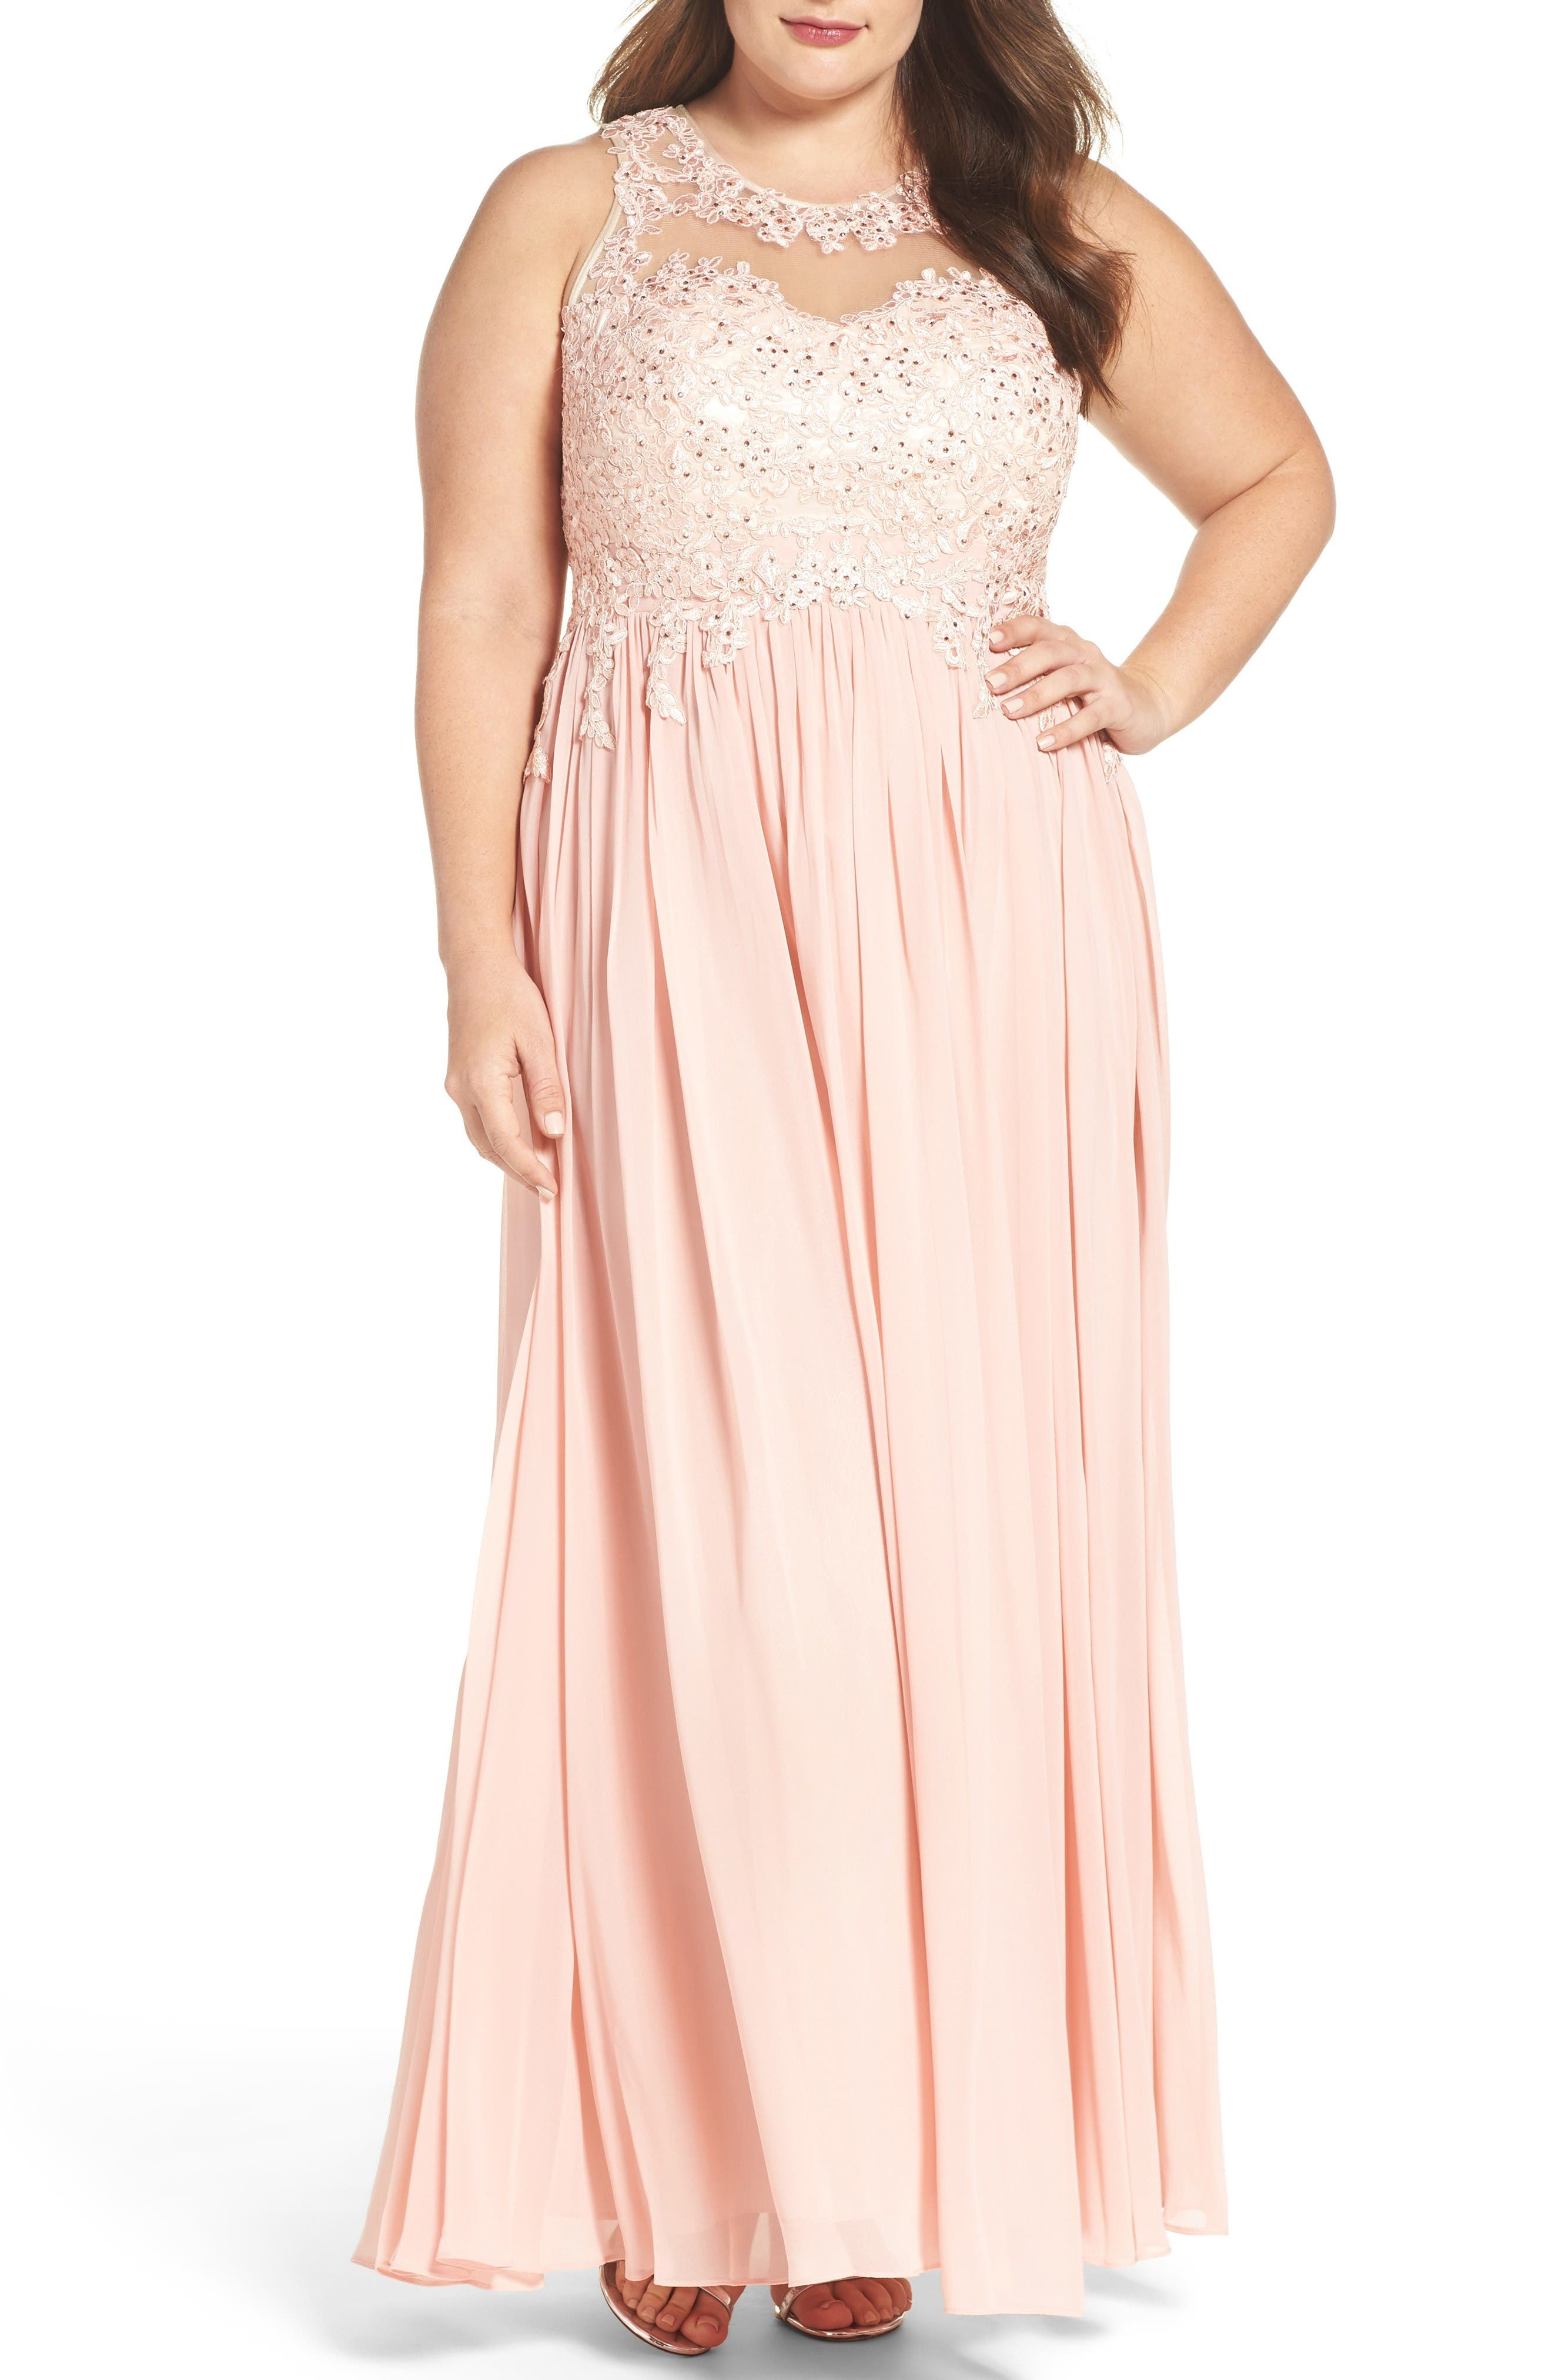 Alternate Image 1 Selected - DECODE 1.8 Embellished A-Line Chiffon Gown (Plus Size)